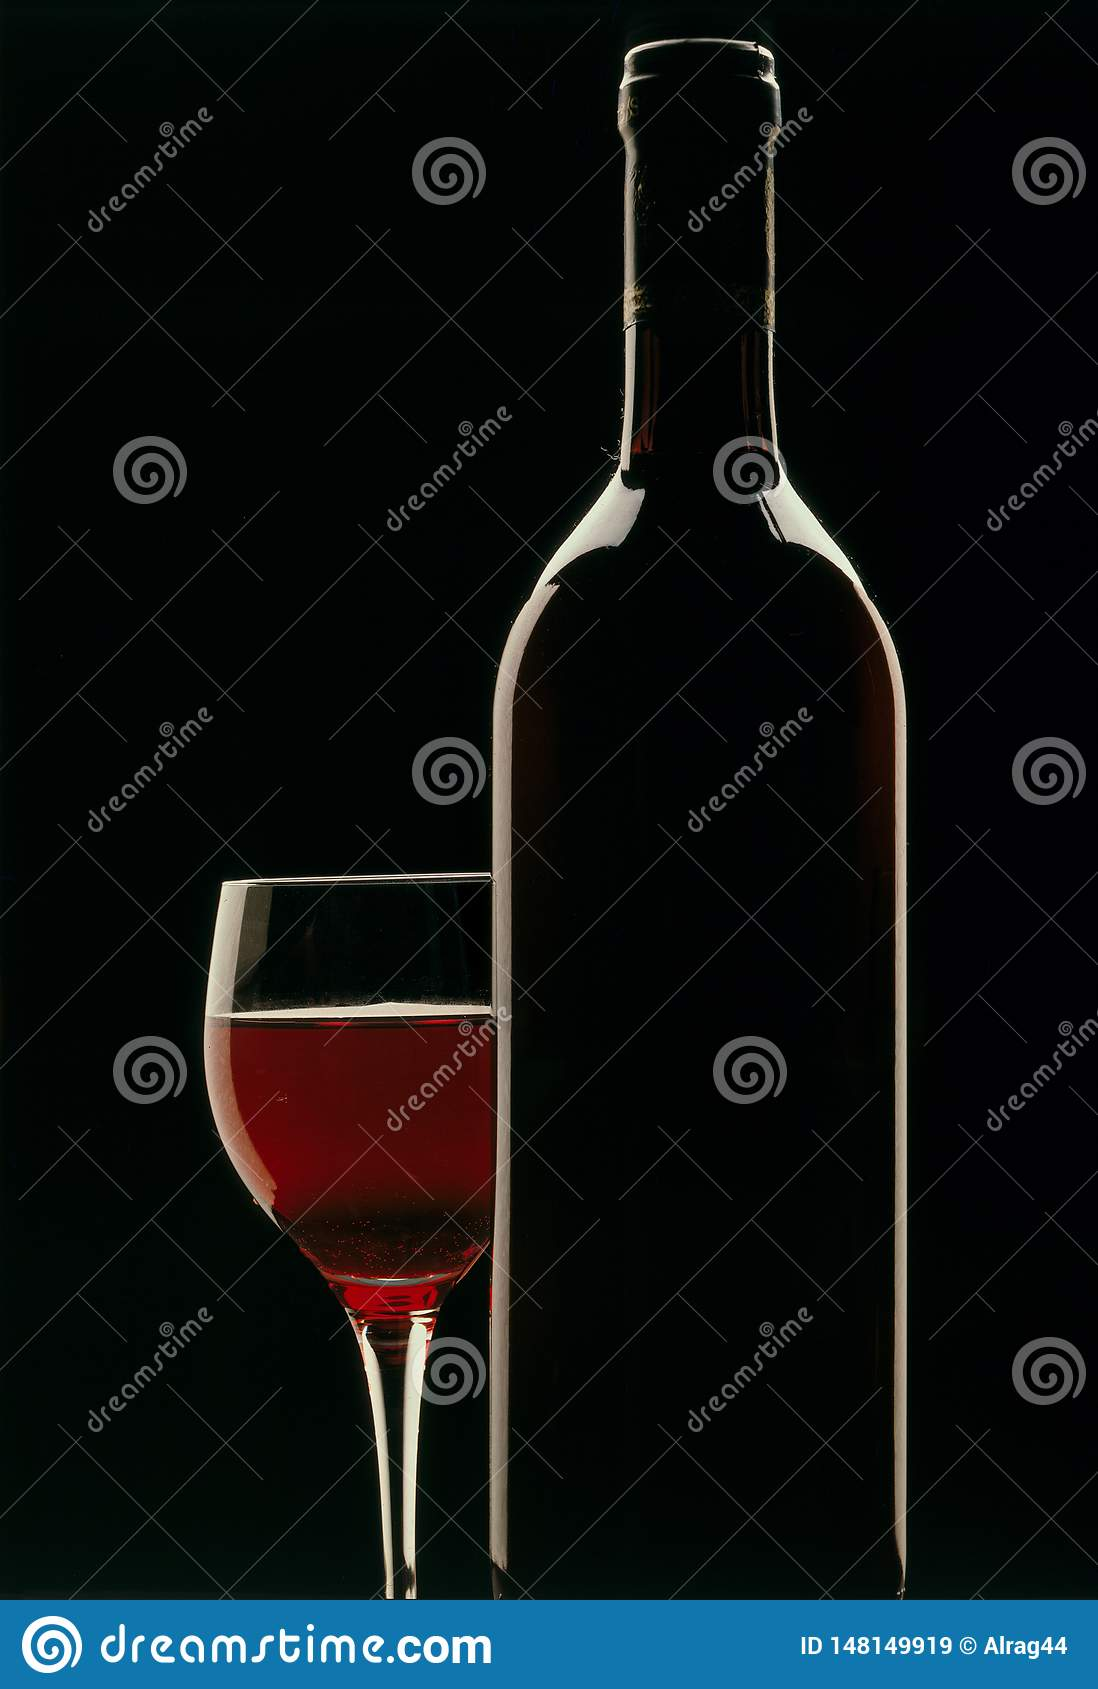 Glass of red wine with bottle